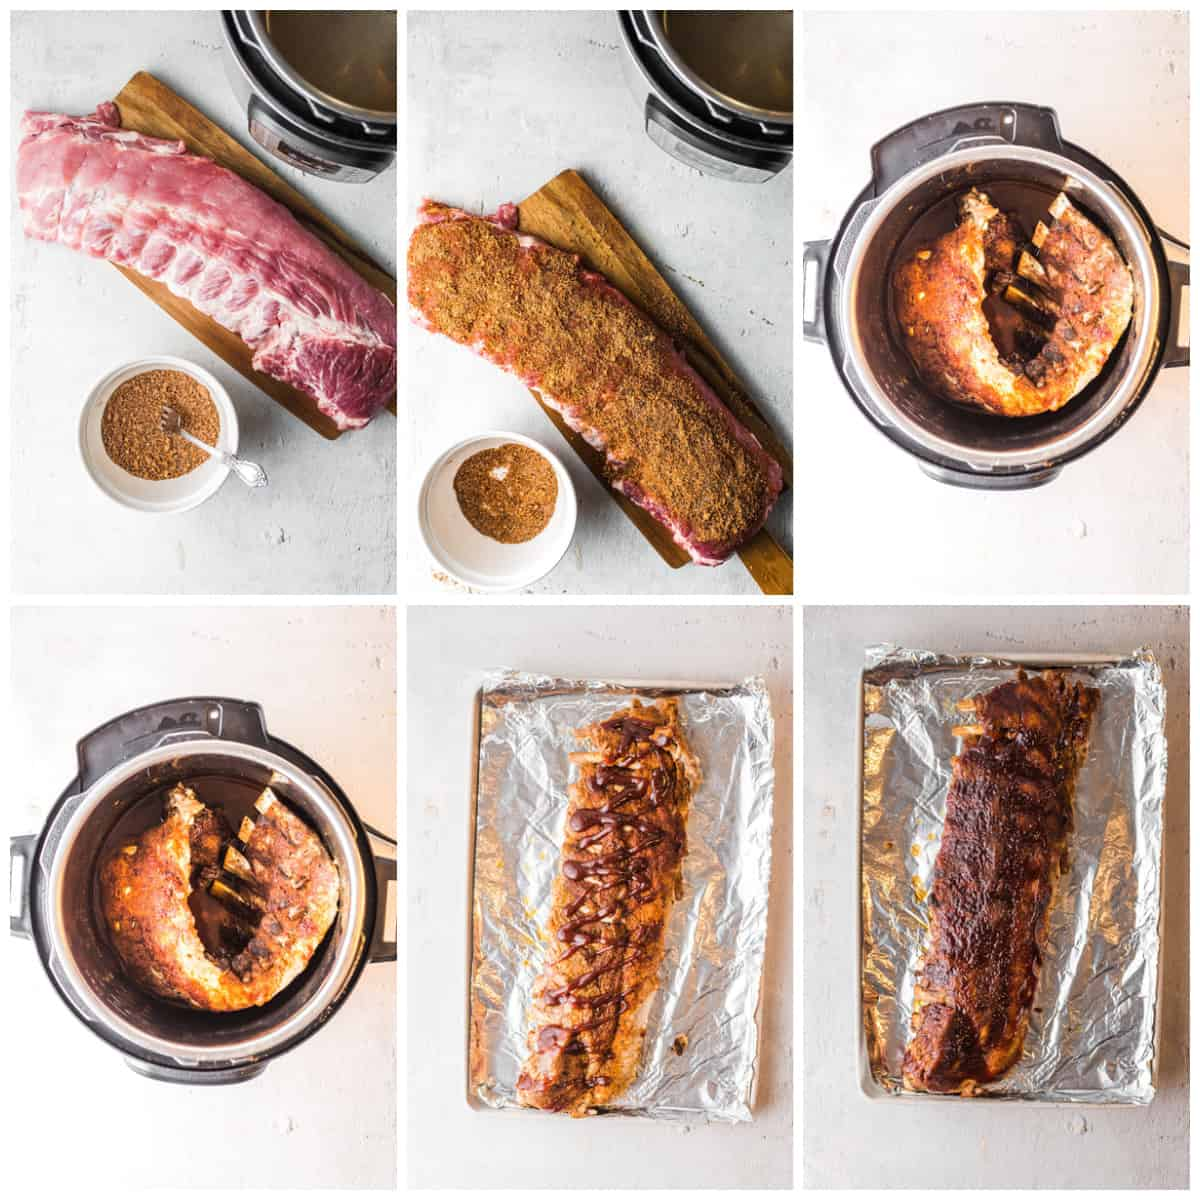 Step by step photos on how to make Instant Pot BBQ Ribs